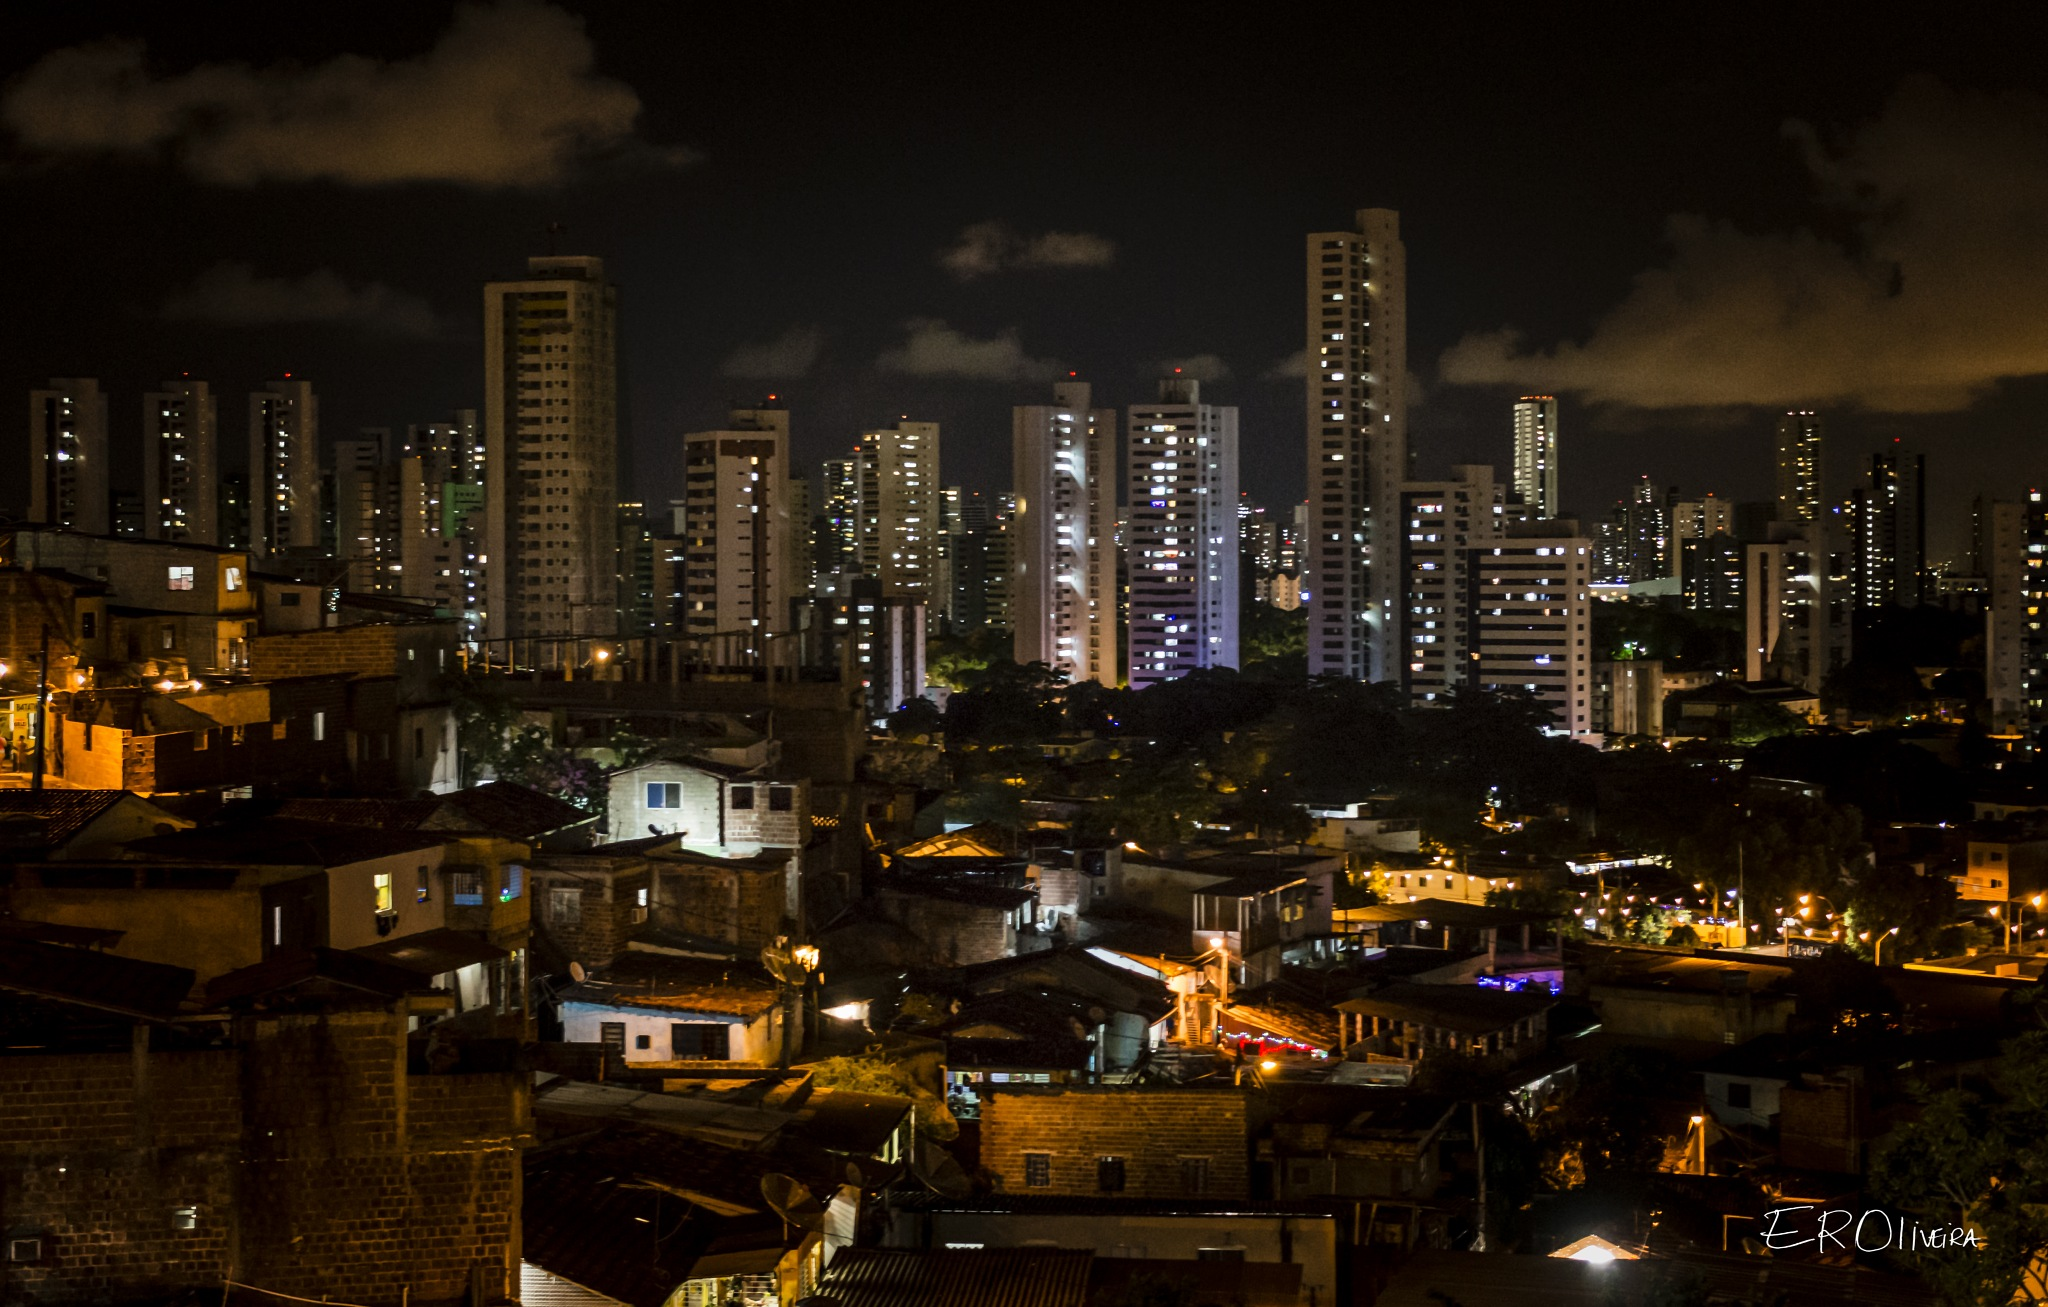 The Beauty of Social Contrast by EROliveira